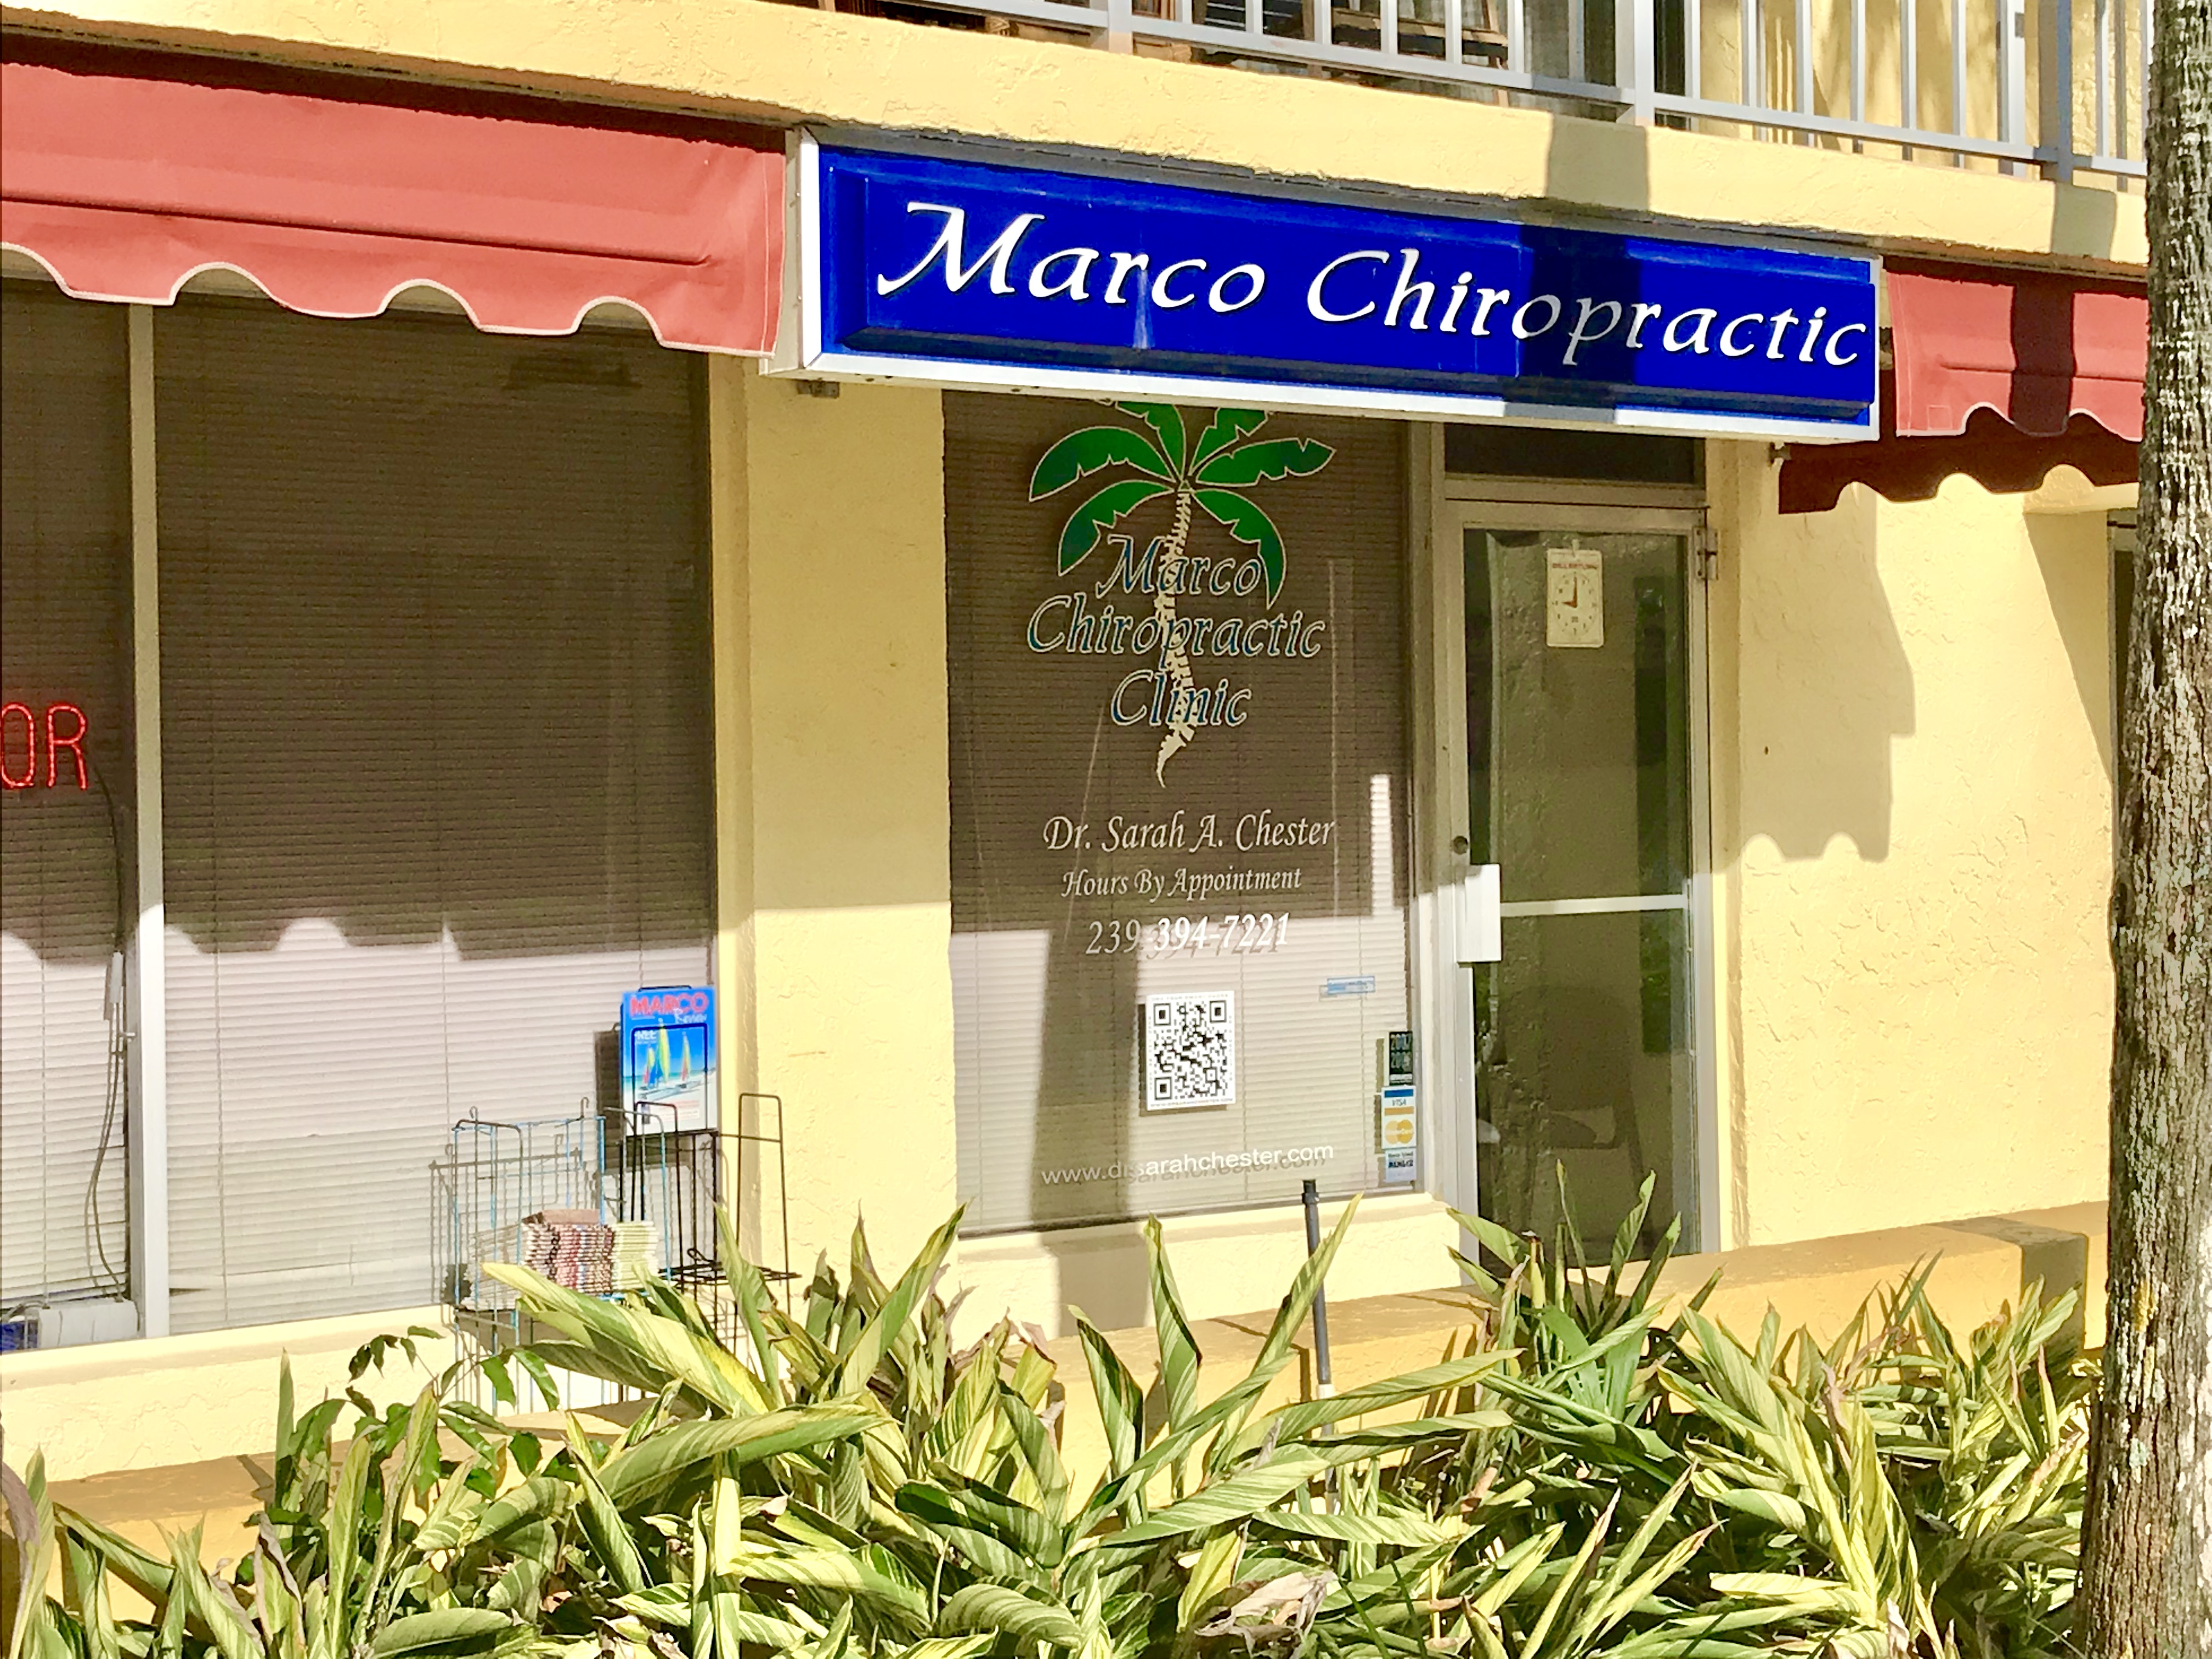 Marco Chiropractic Entrance